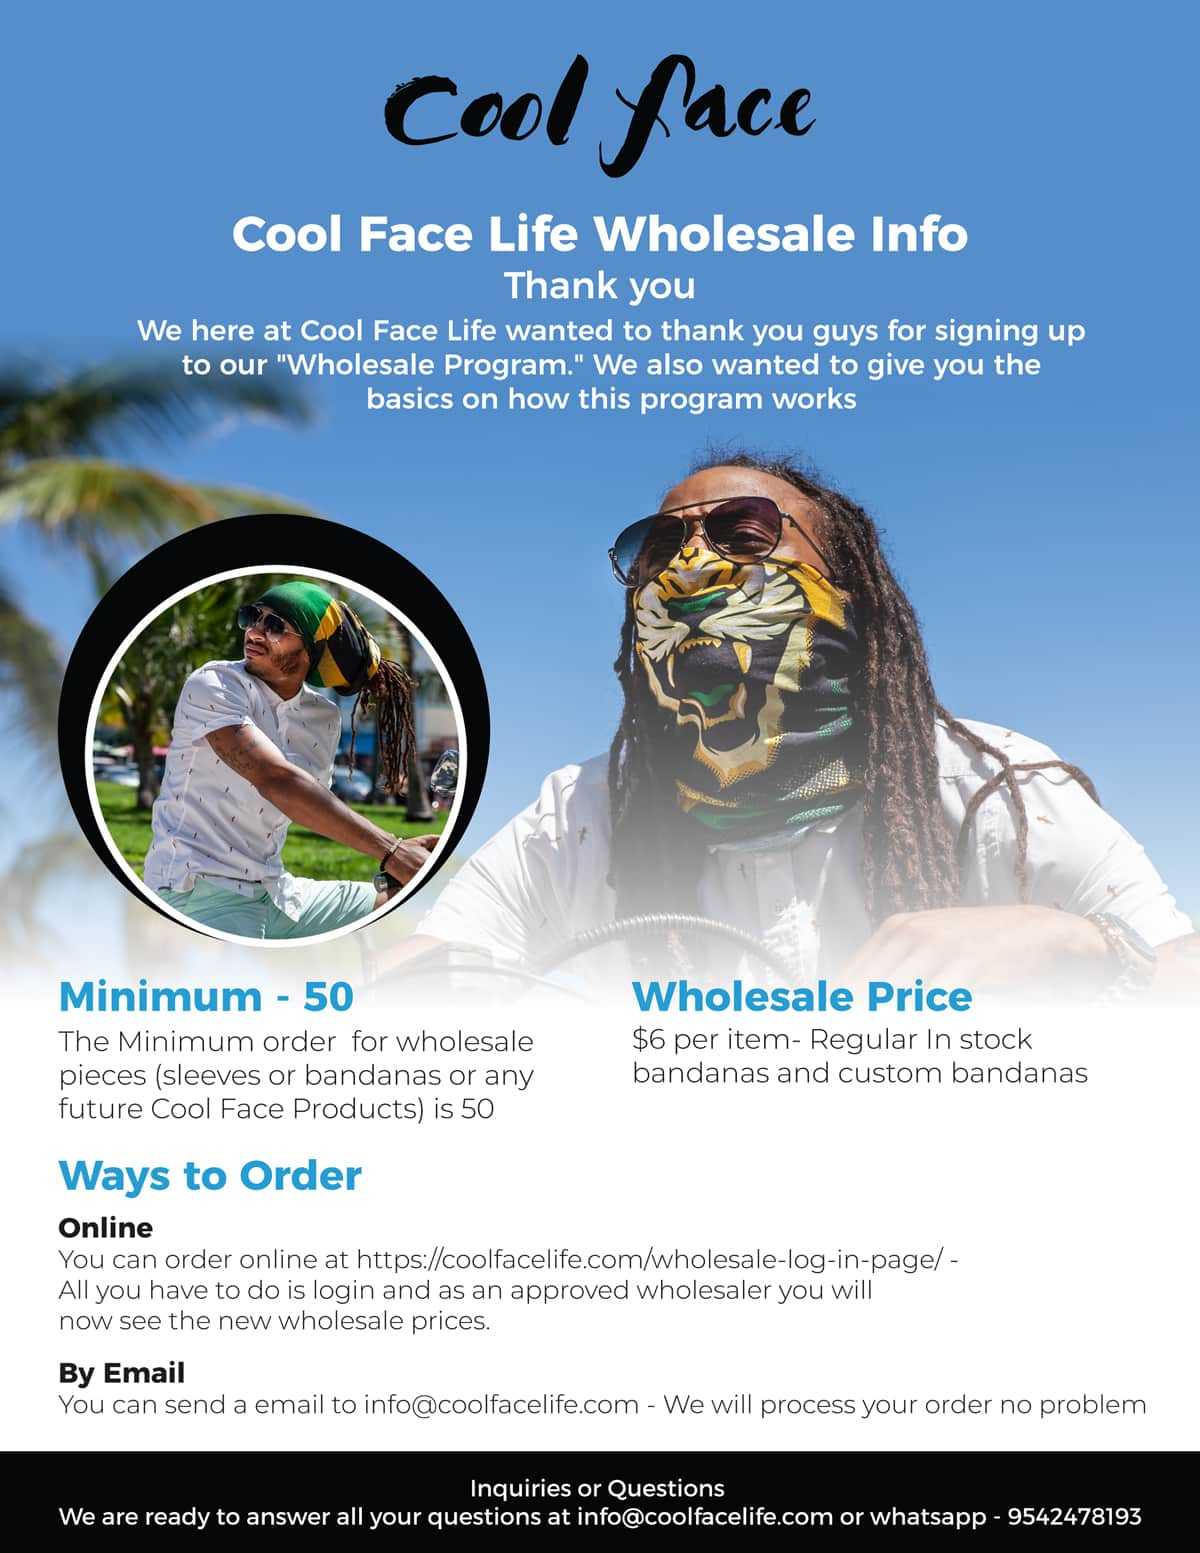 Cool Face Life Wholesale Explained